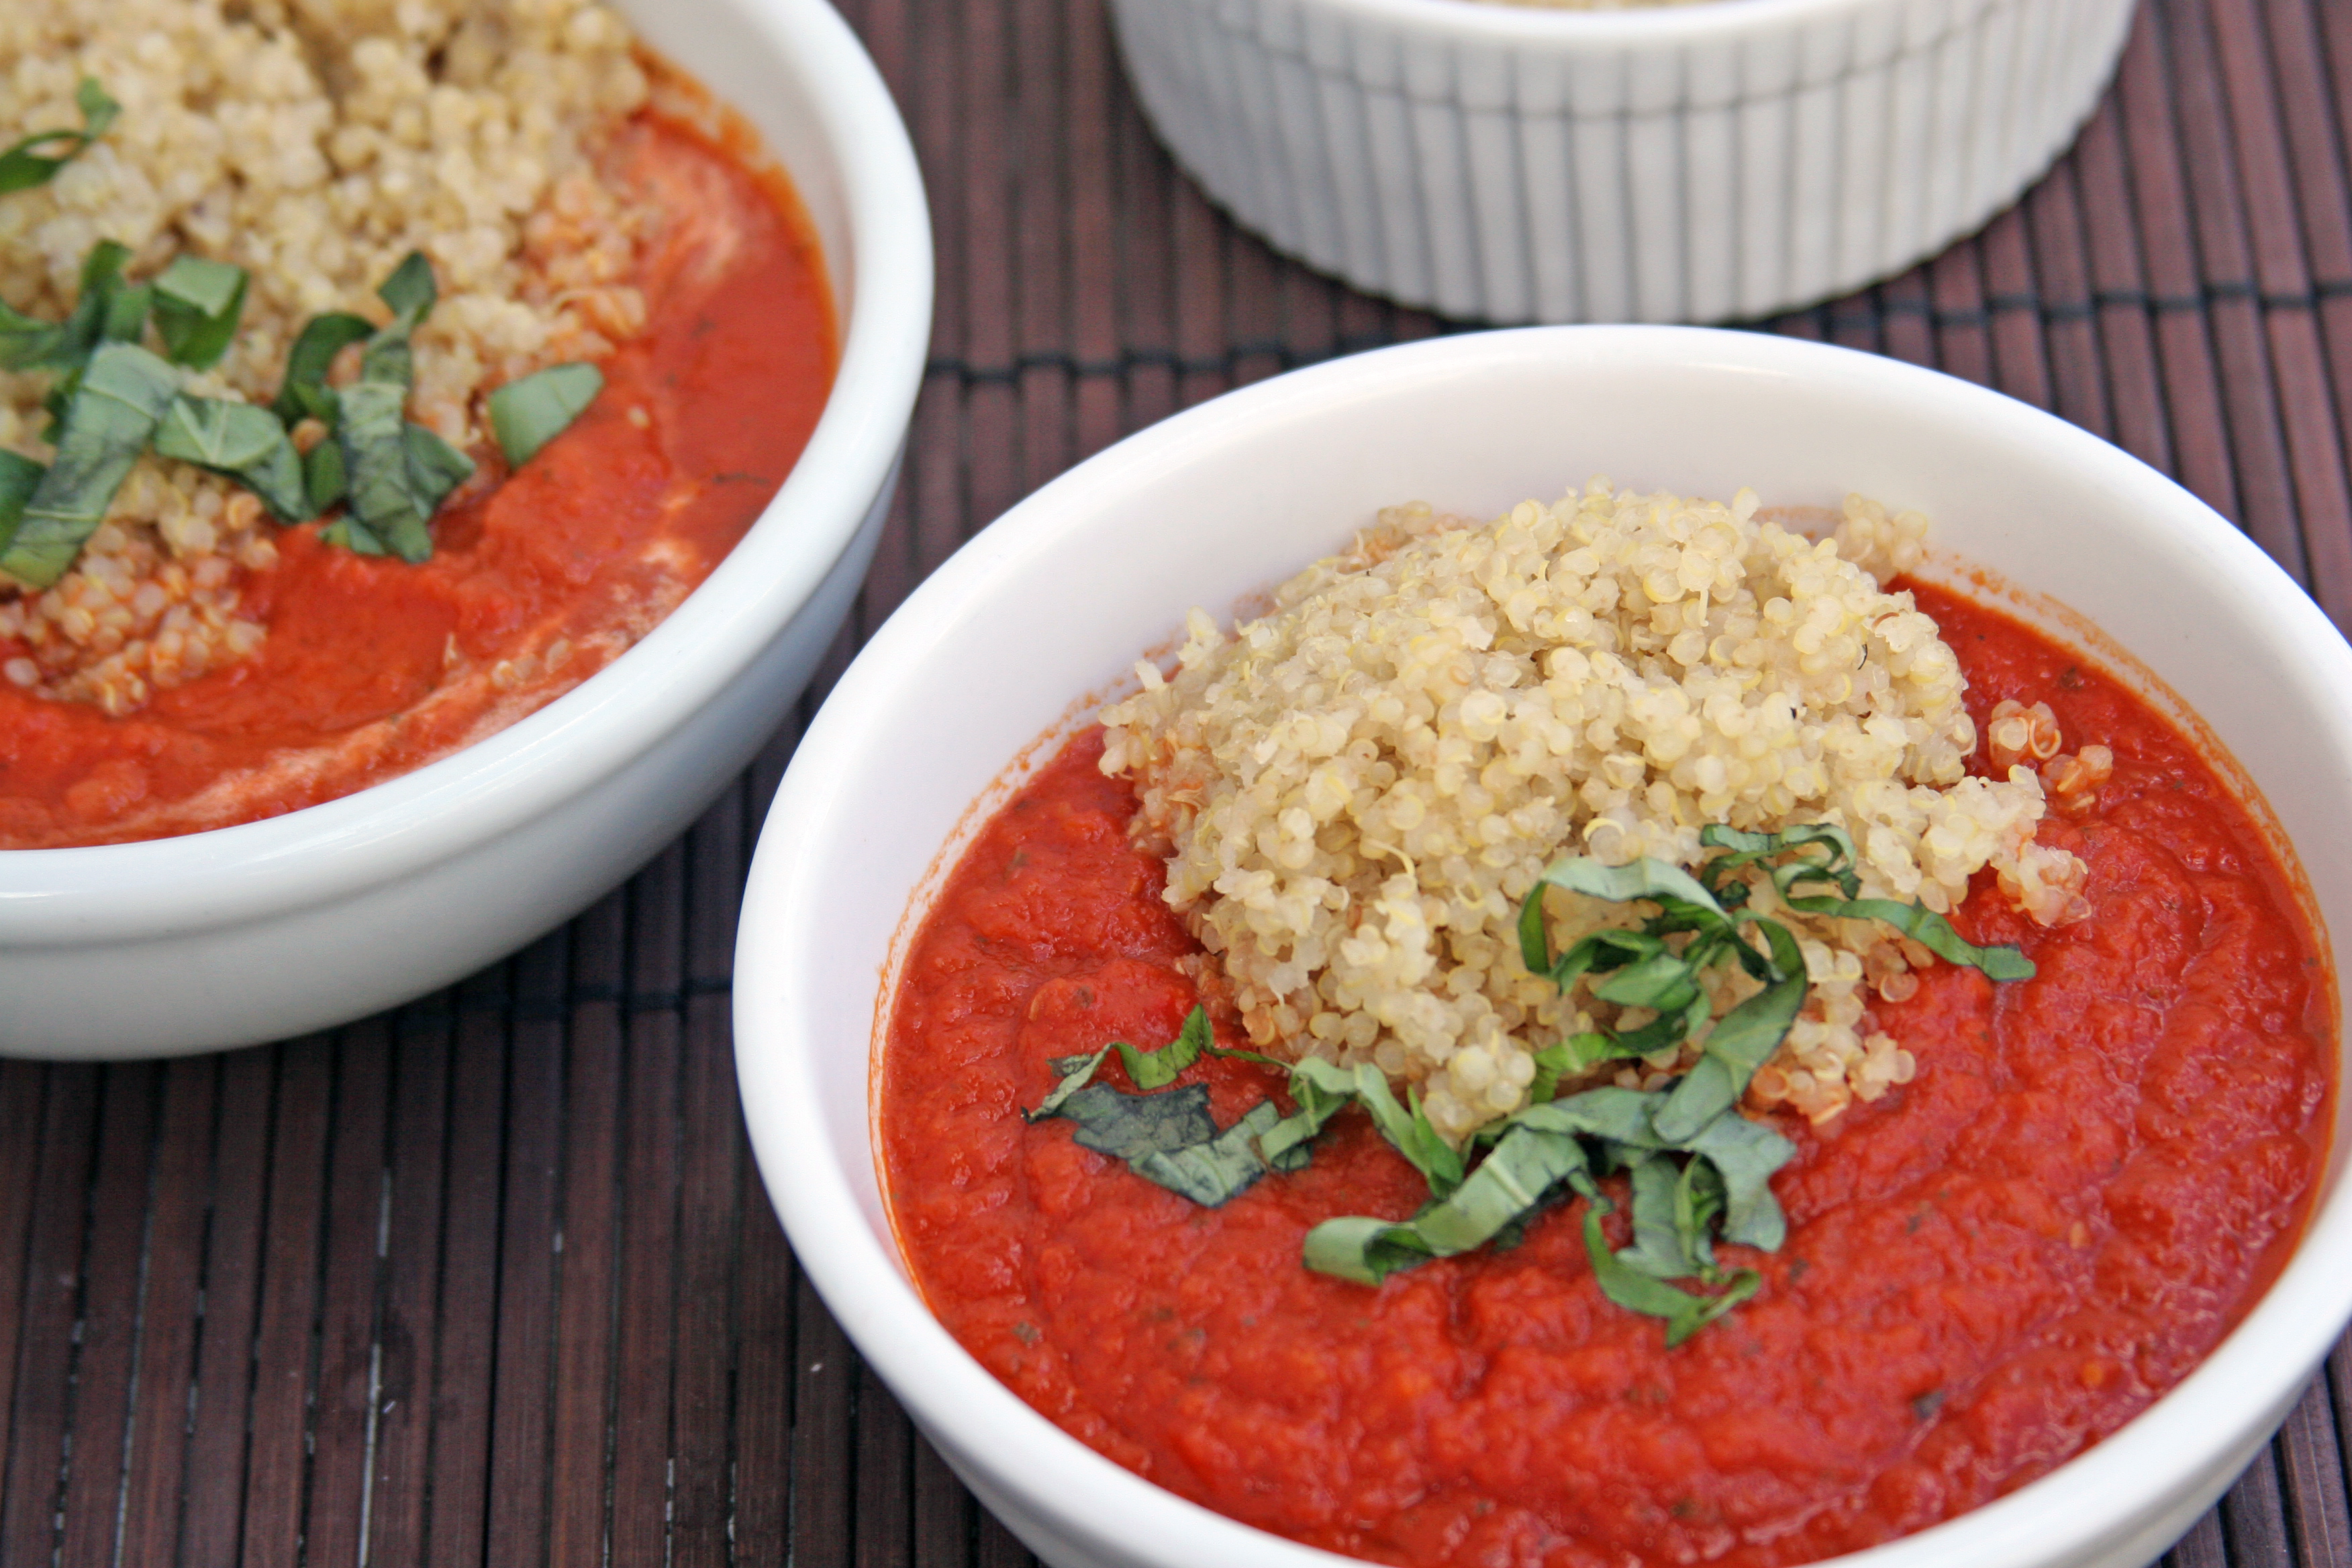 Tomato Soup with Chipotle Peppers and Quinoa